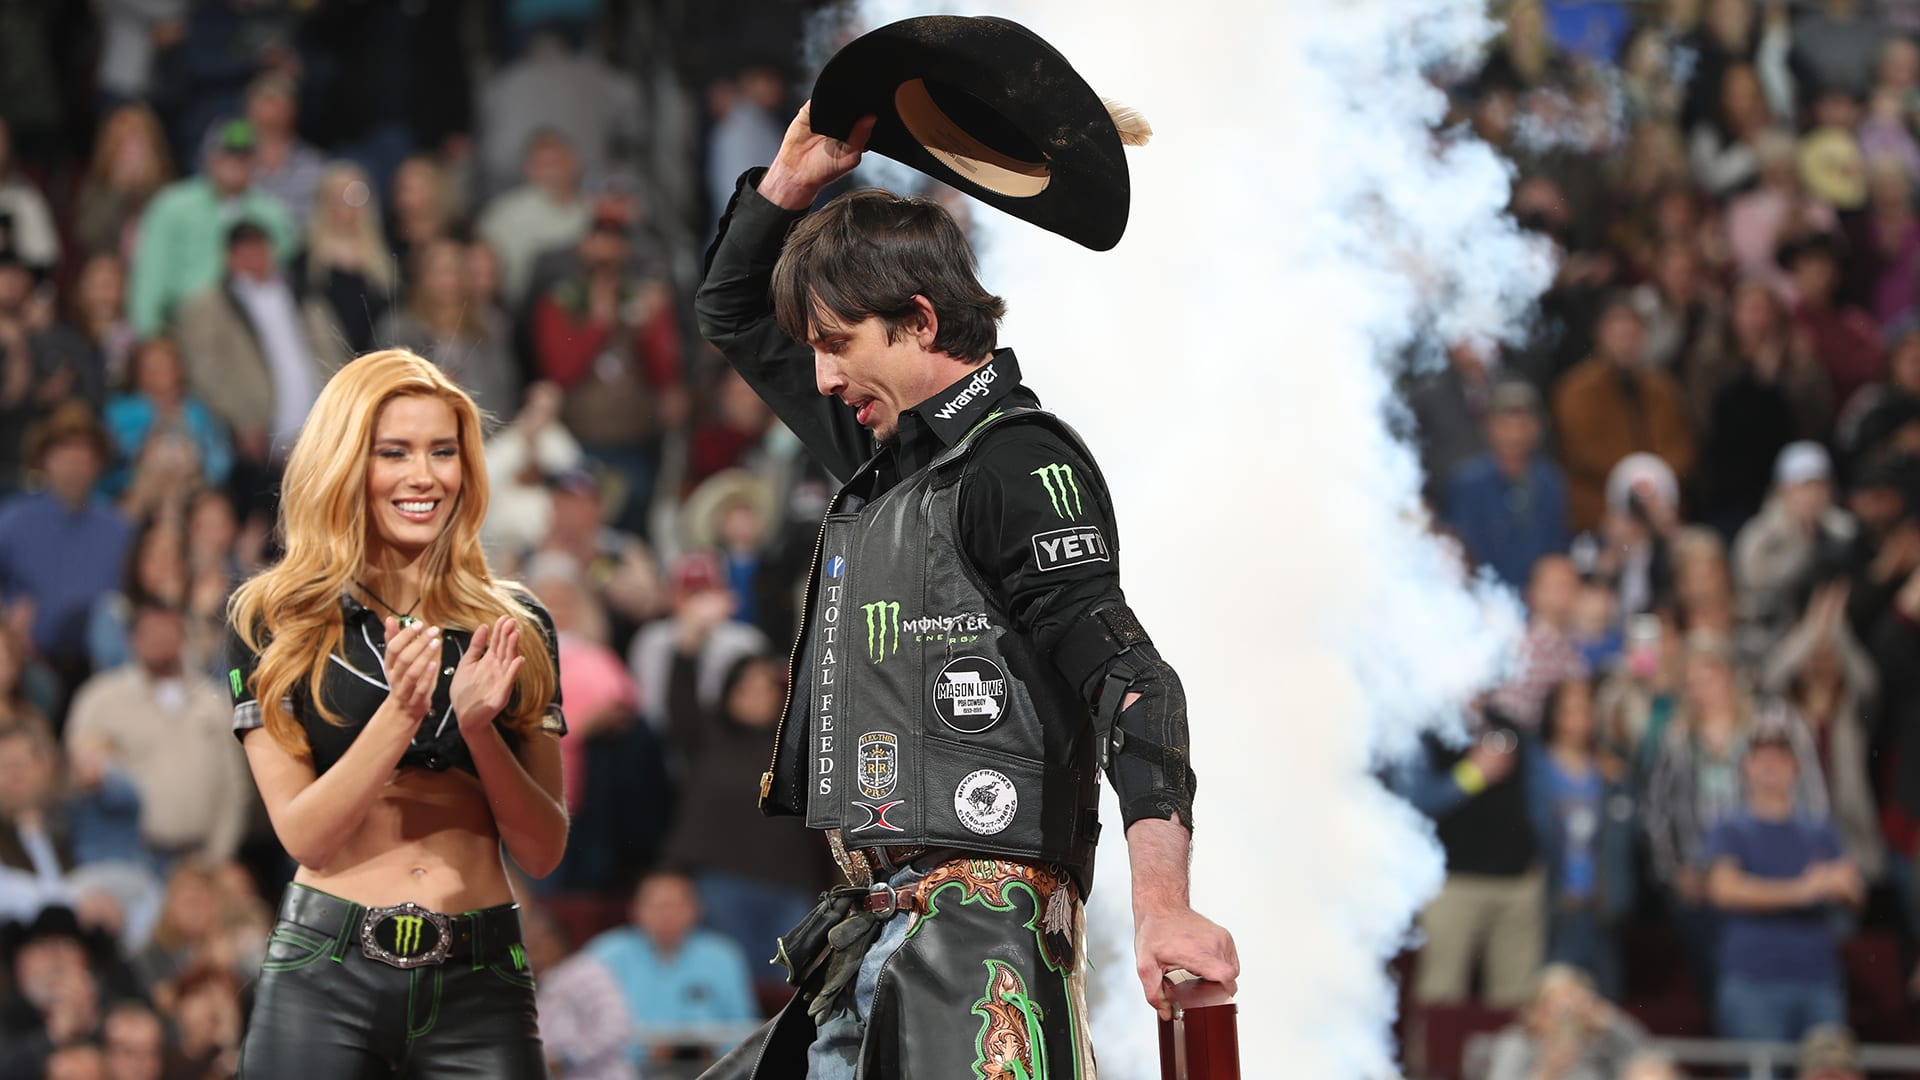 Mauney continues to overcome injuries in pursuit of history